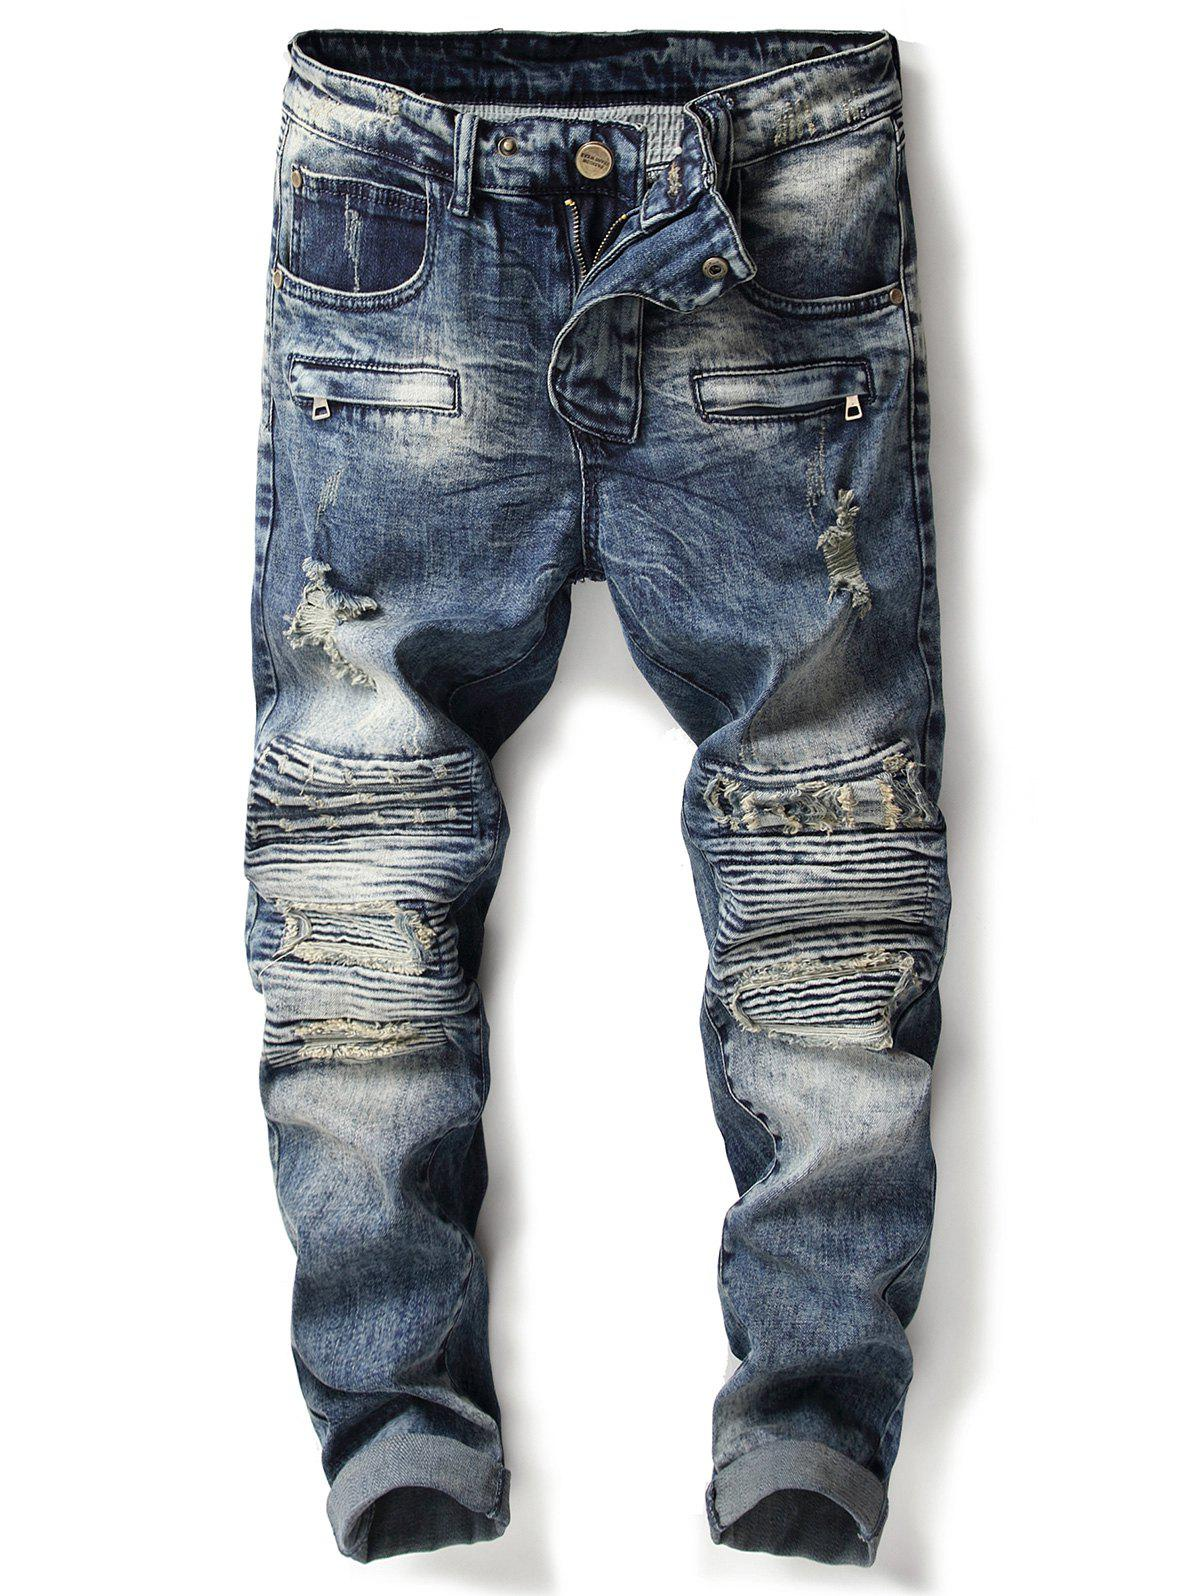 Accordion Pleat Zipper Ripped Jeans - DENIM BLUE 38